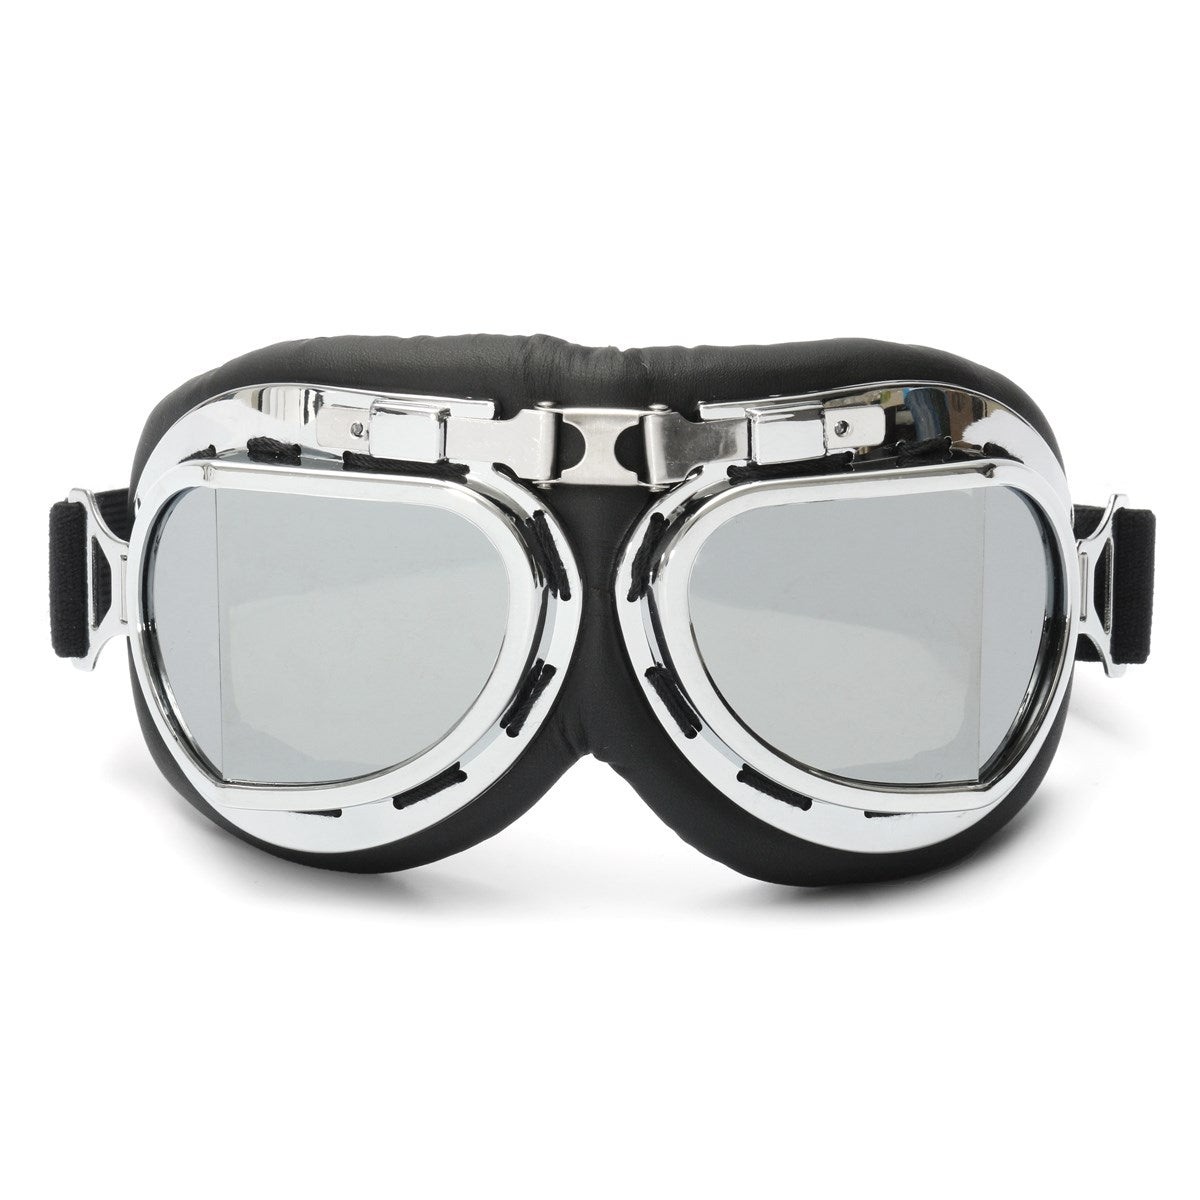 NEW Pilot Motorcycle Sport Ski Clear Goggle Eyewear Scooter Goggle Glasses Safety Protective Goggle